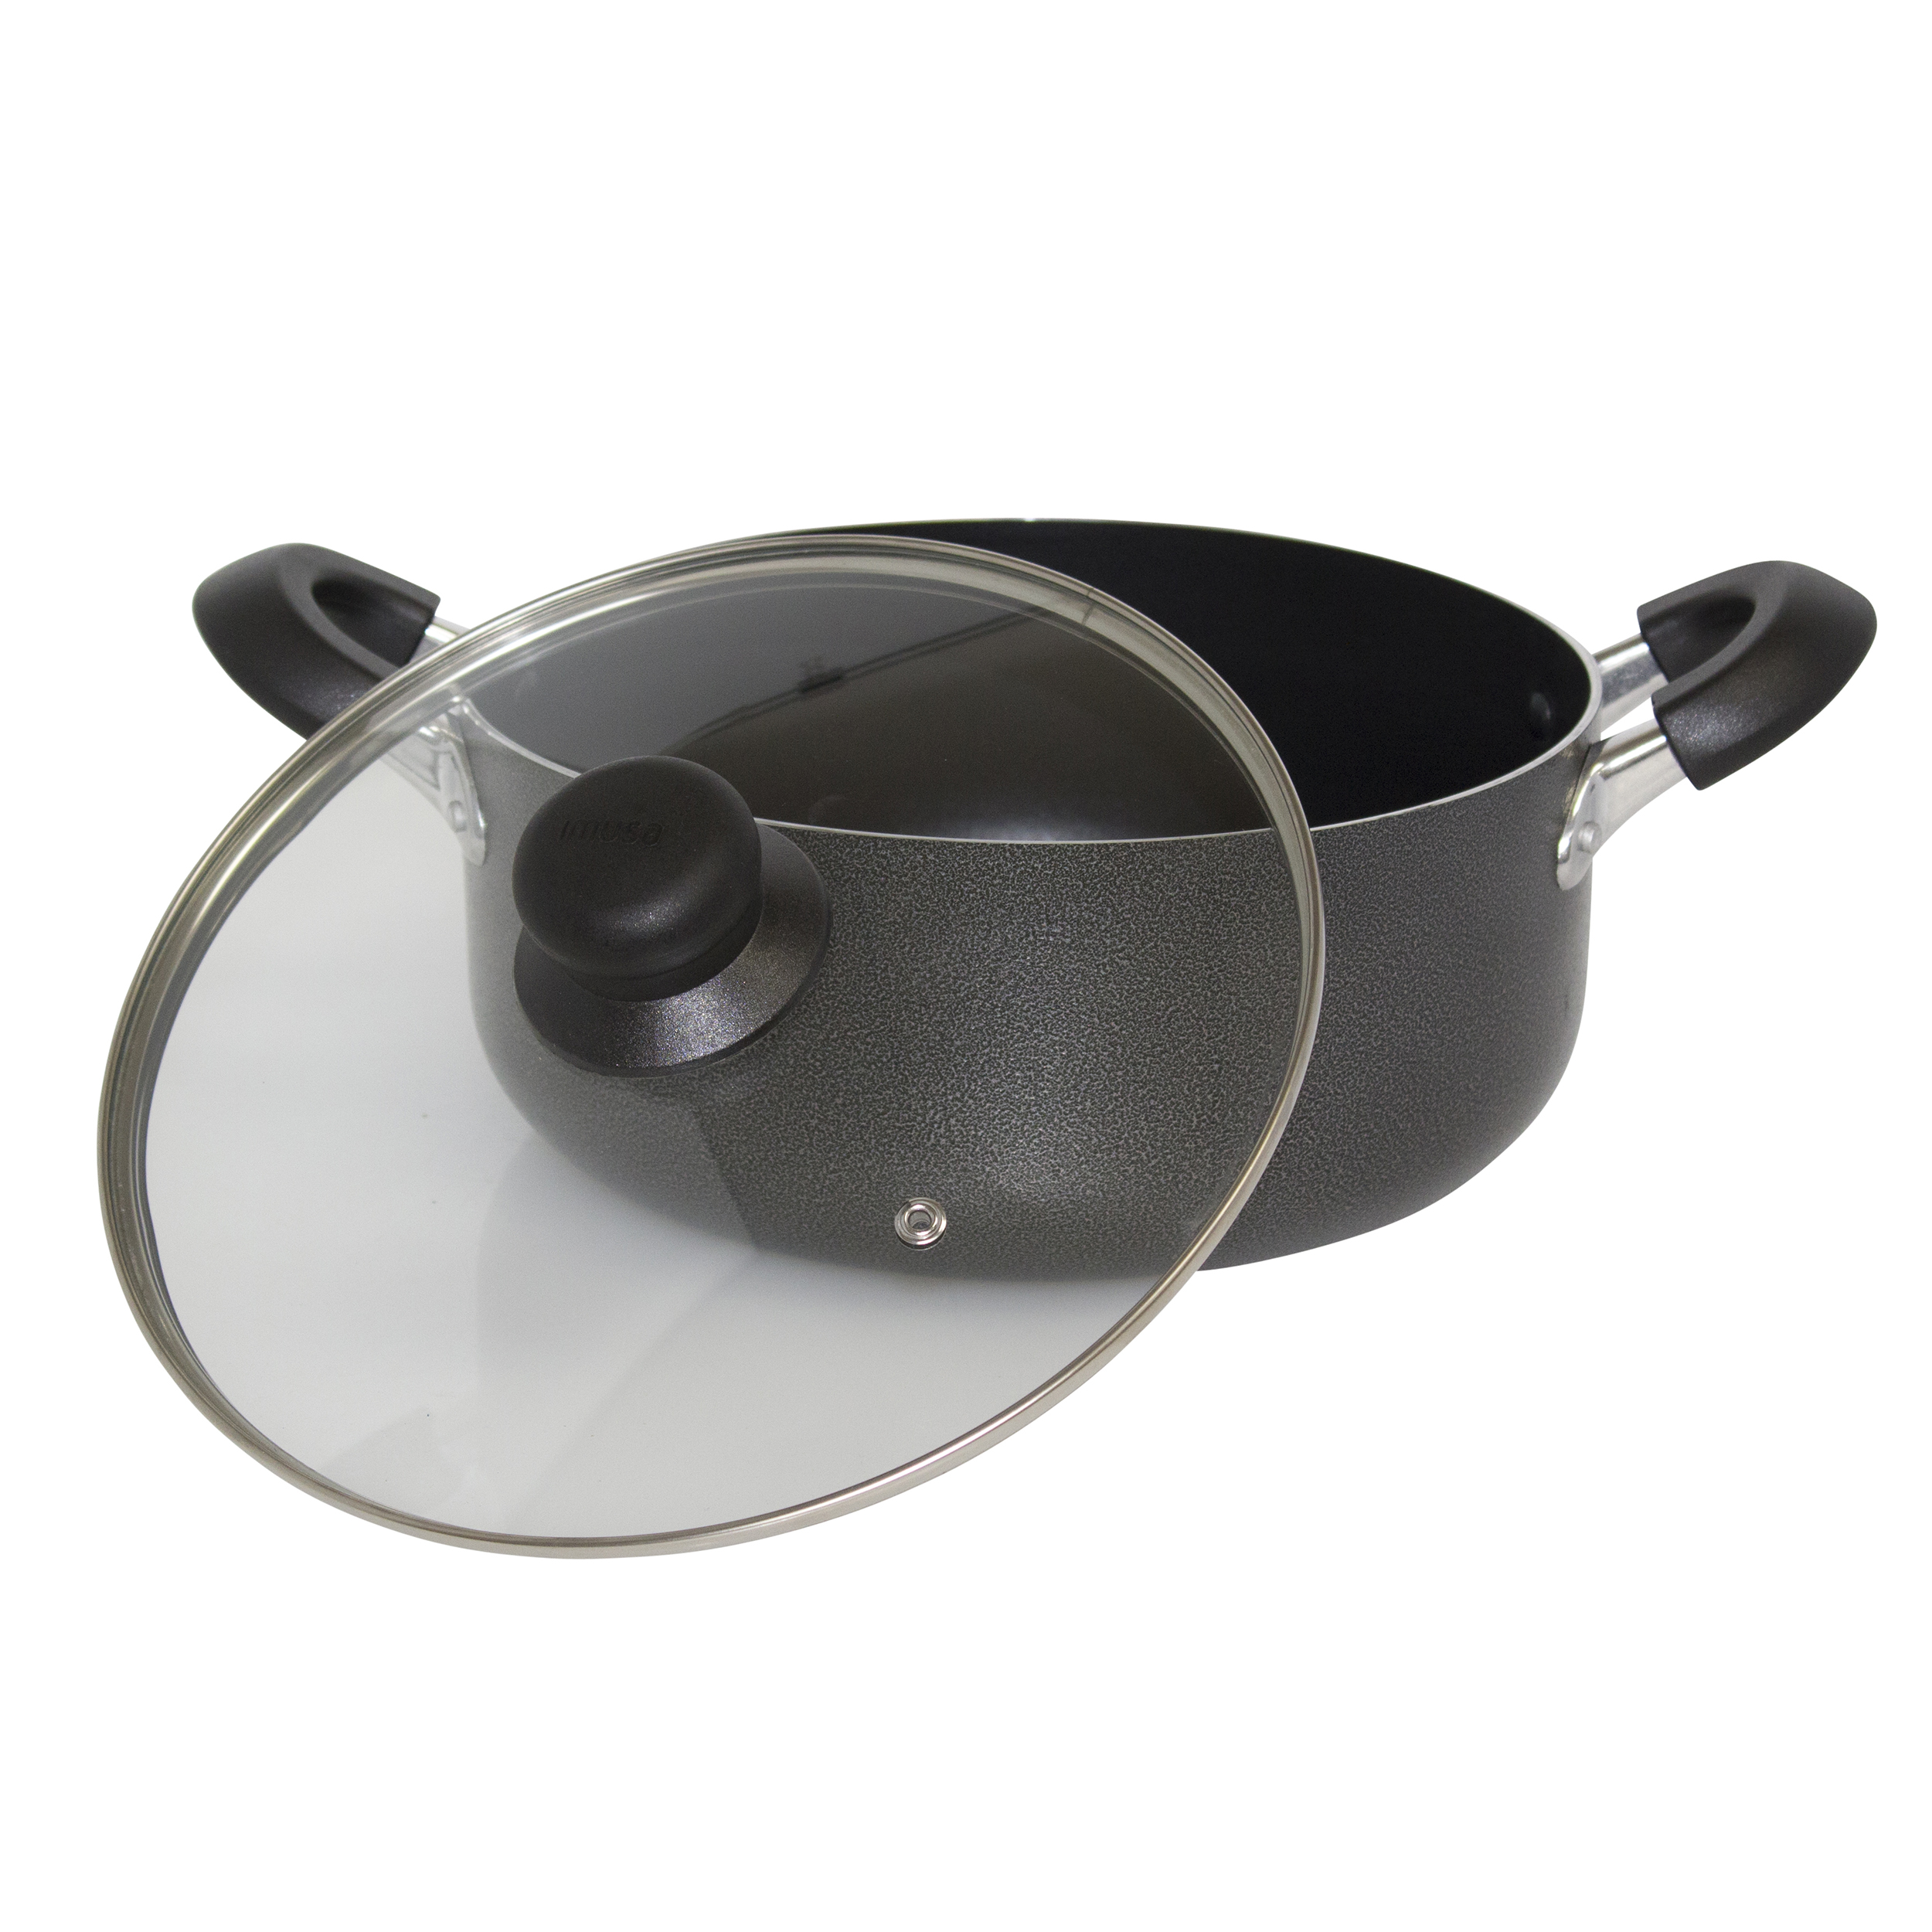 IMUSA Nonstick Hammered Dutch Oven with Glass Lid 4.8 Quart